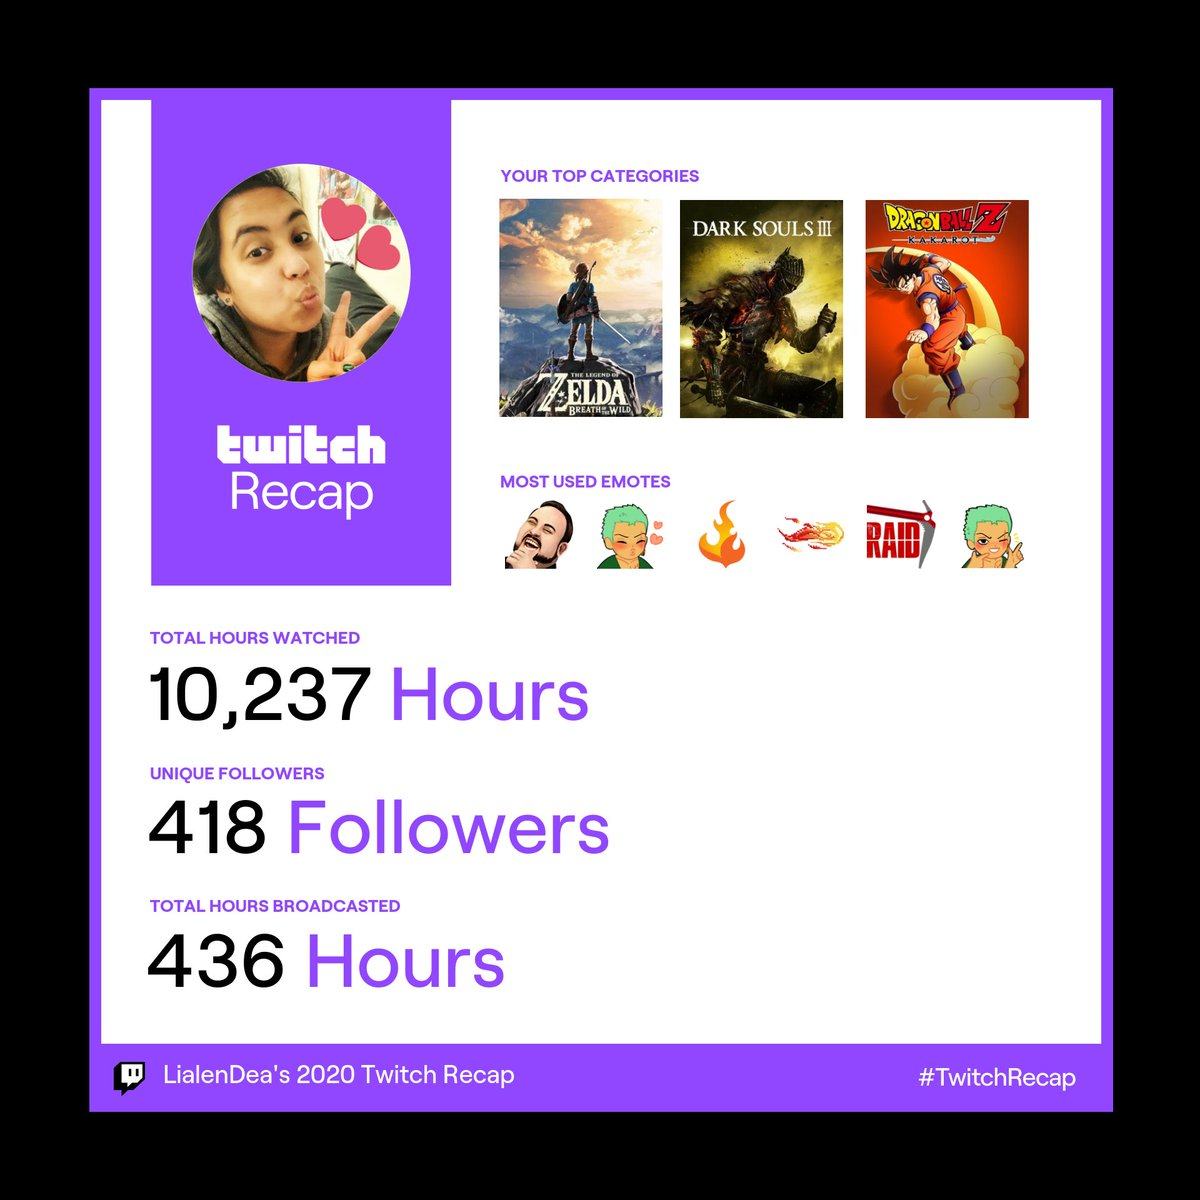 Does.... this mean I'm a Dark Souls streamer now? 😭😭  On a serious note, thank you guys for helping me grow this year. You all mean so much to me. Thank you 💚  #TwitchRecap2020 #twitchrecap